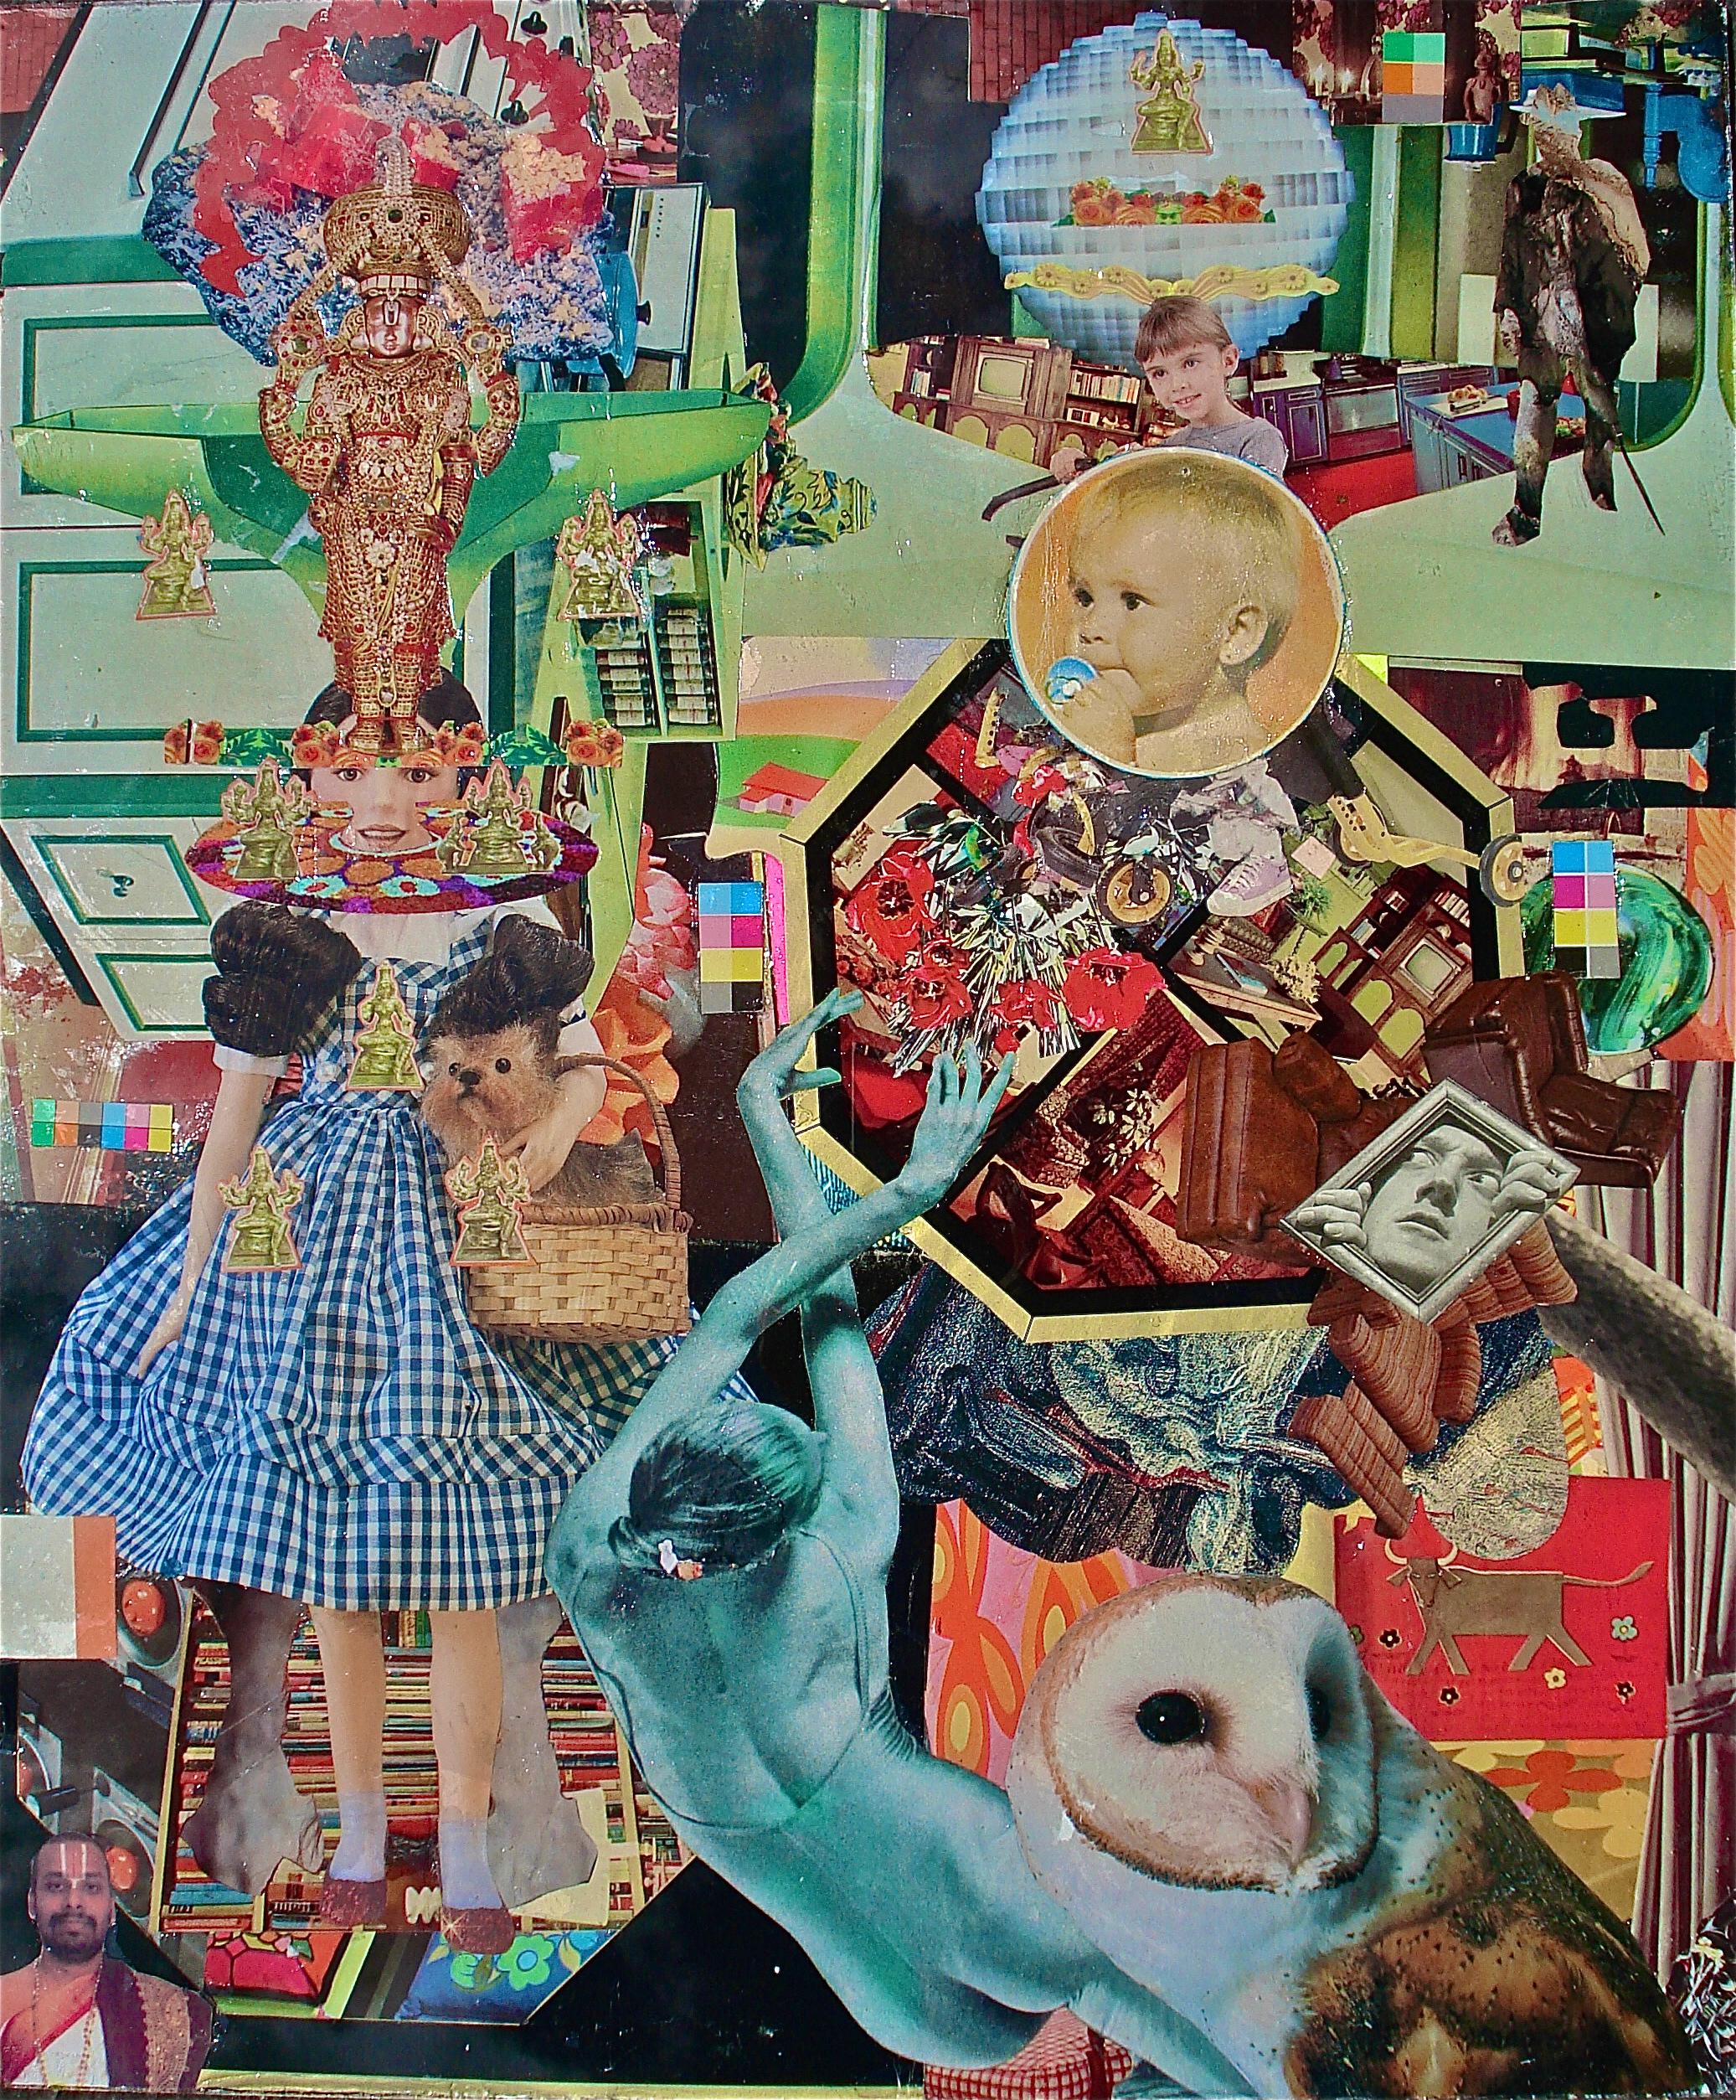 DOMESTIC OFFERINGS 2013, collage on glass, 15x13 inches